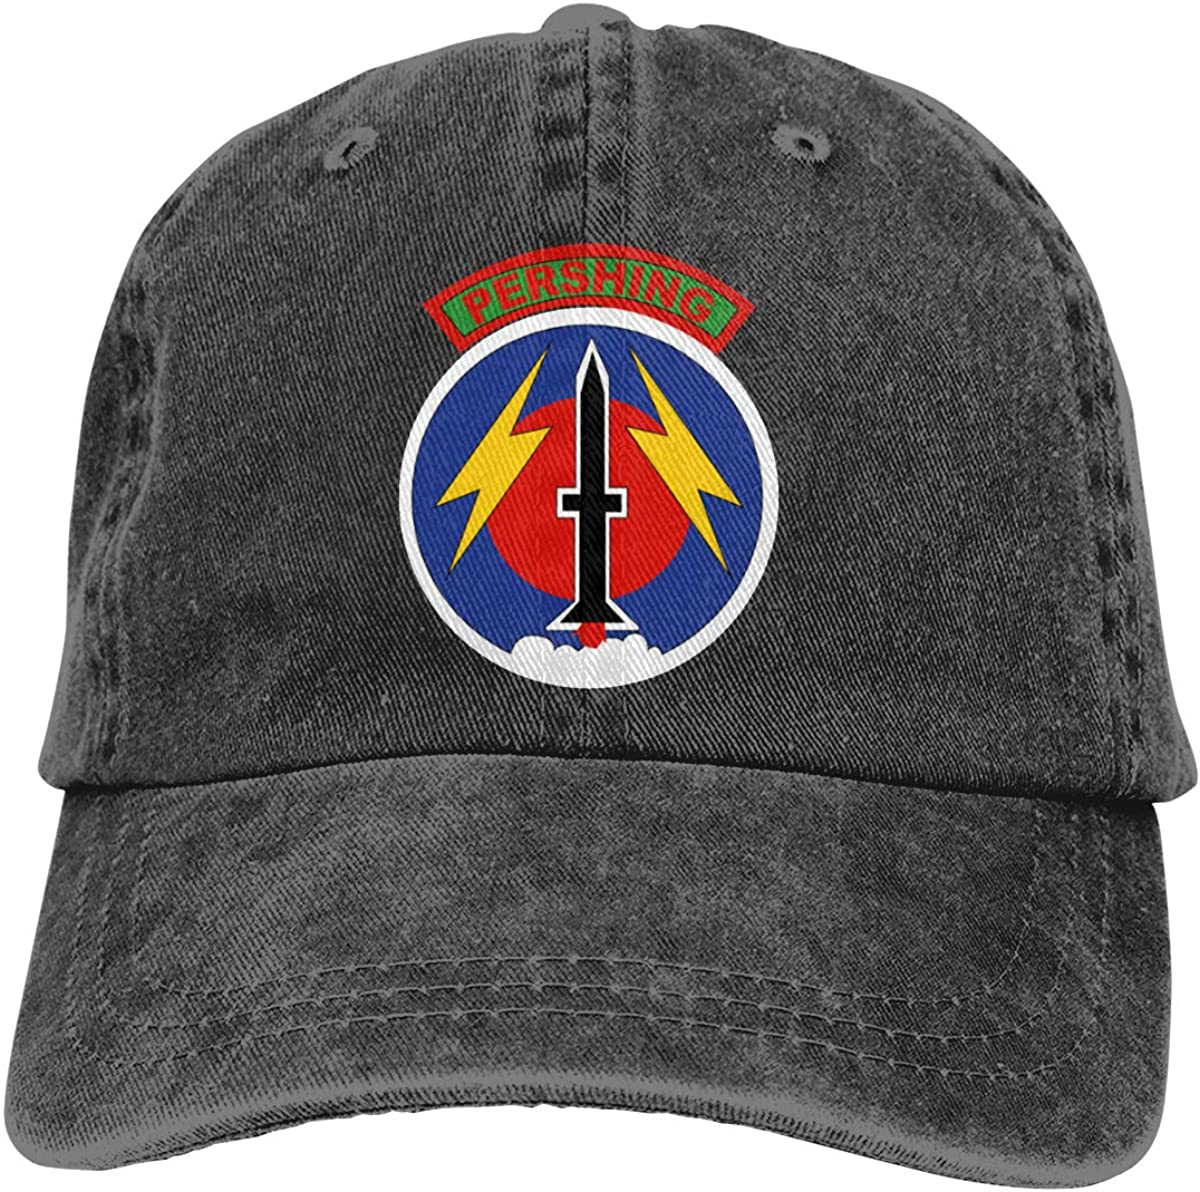 Black Trucker Hats Dad Caps with Embroidery Snapback Hat Vintage 1964